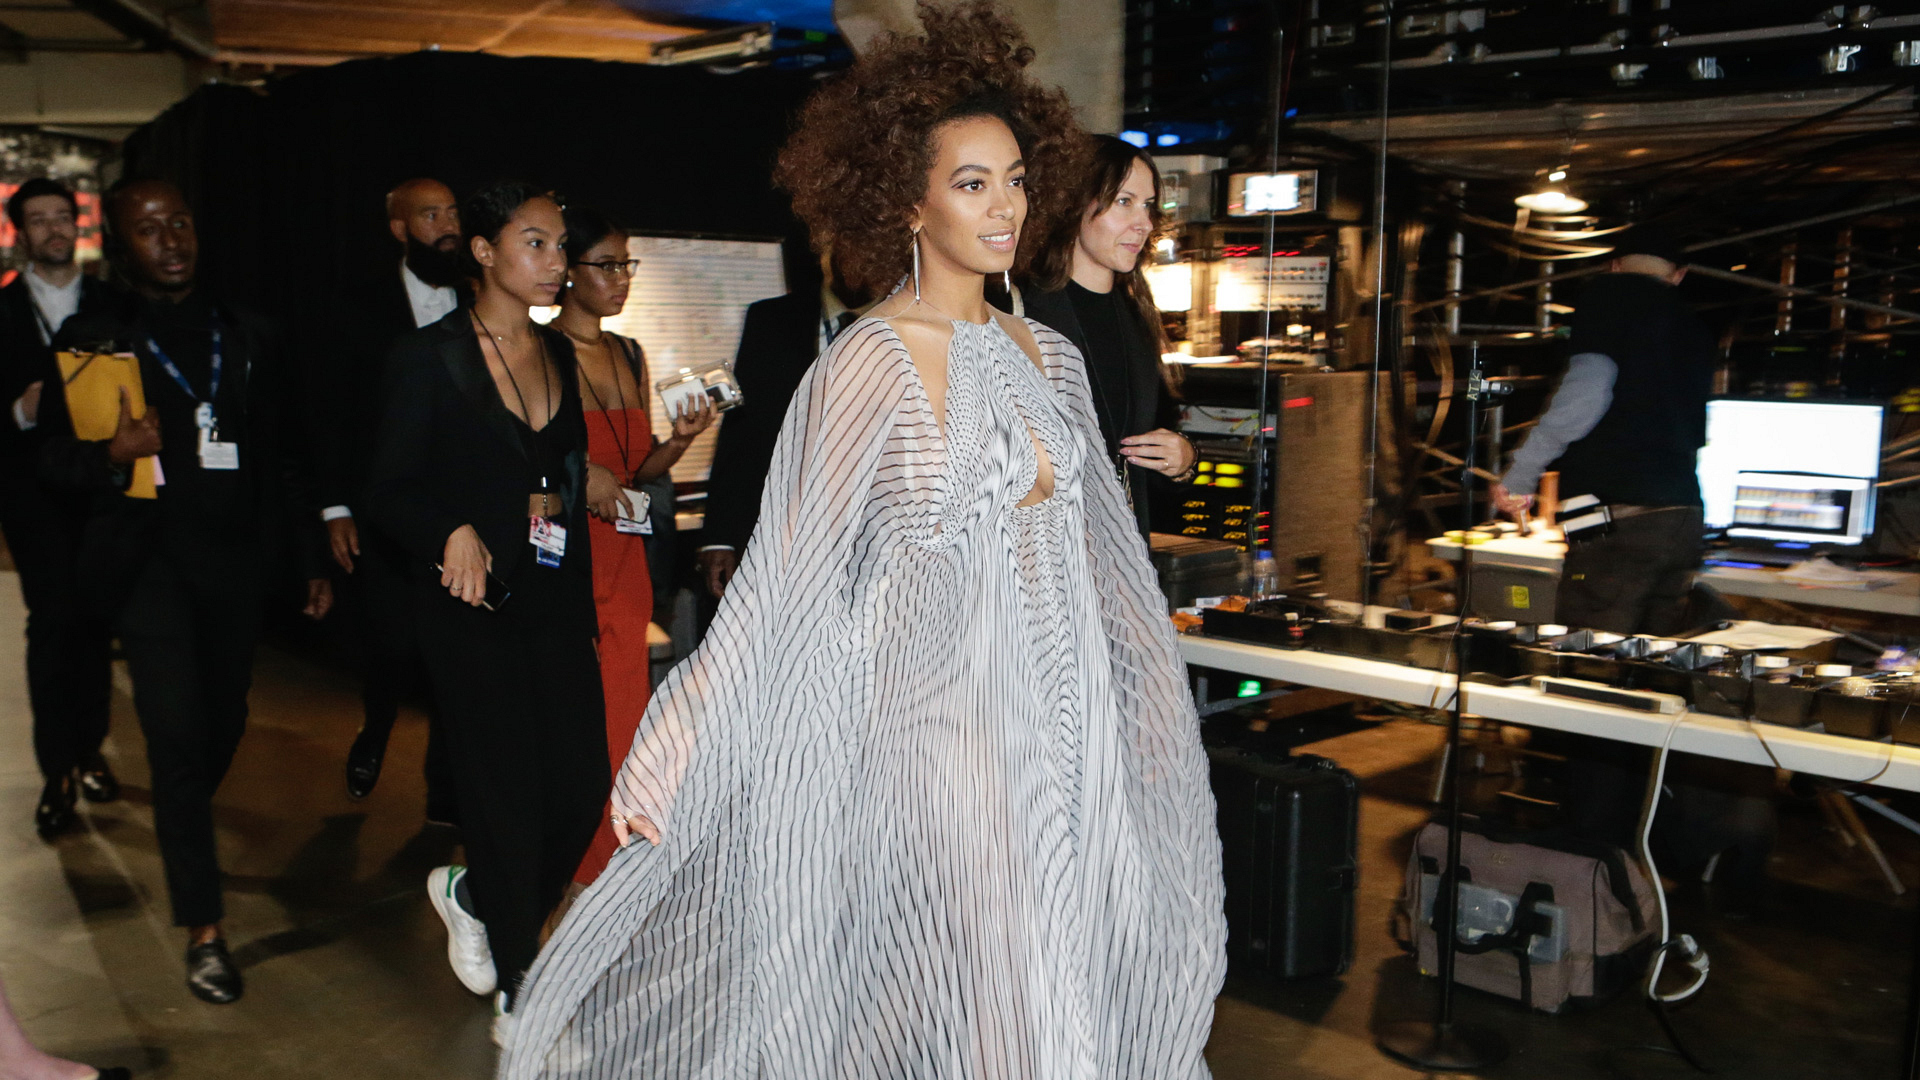 Solange appears to float through the GRAMMY backstage area in this striped statement dress.